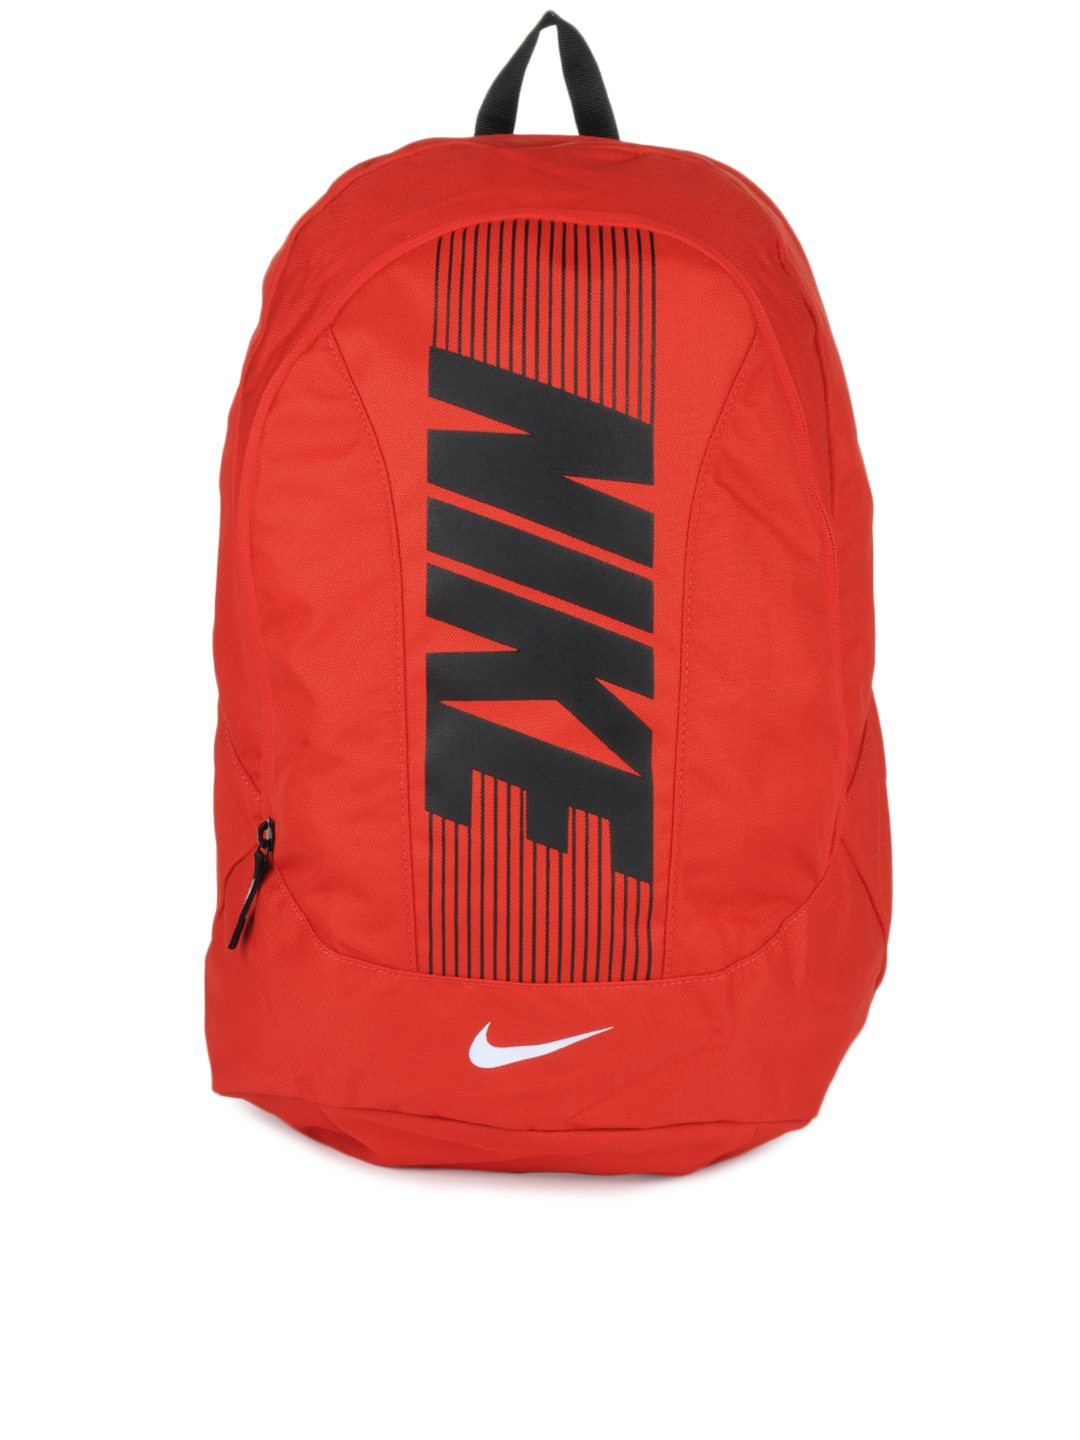 Buy Nike Graphic North Classic II Backpack at Rs.1696